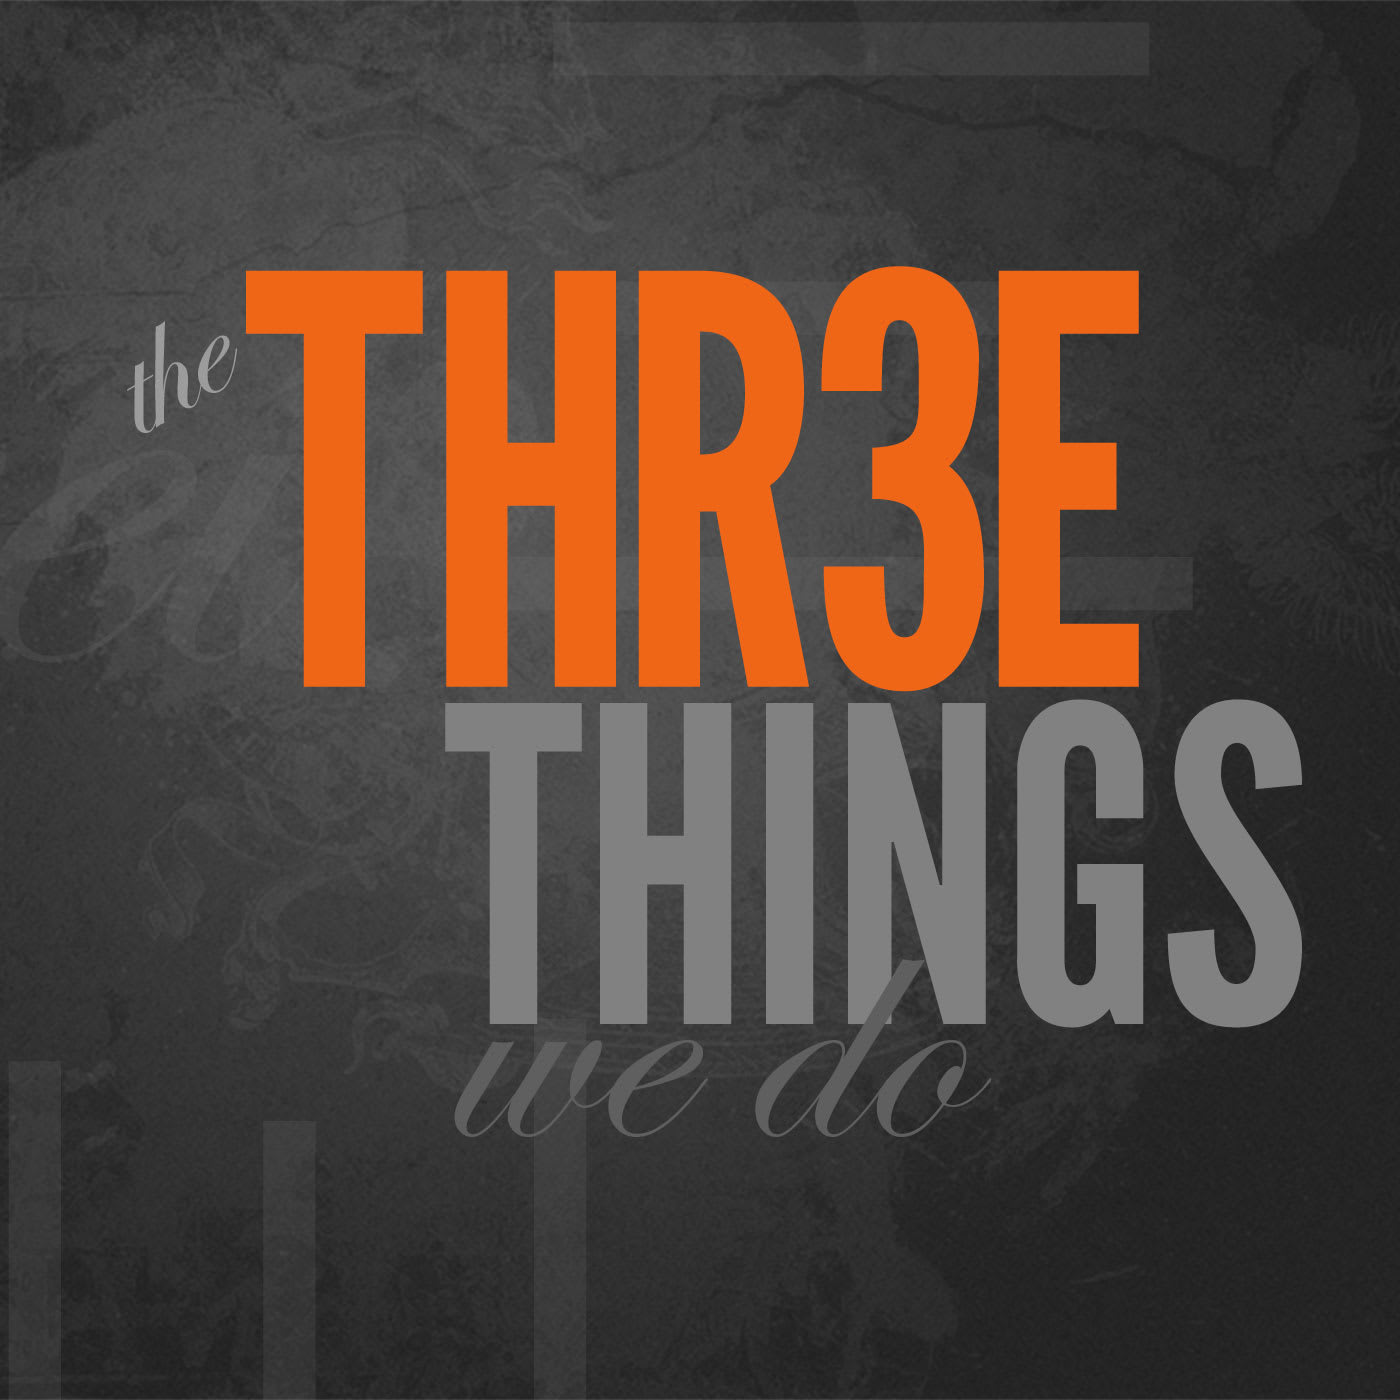 The Three Things We Do